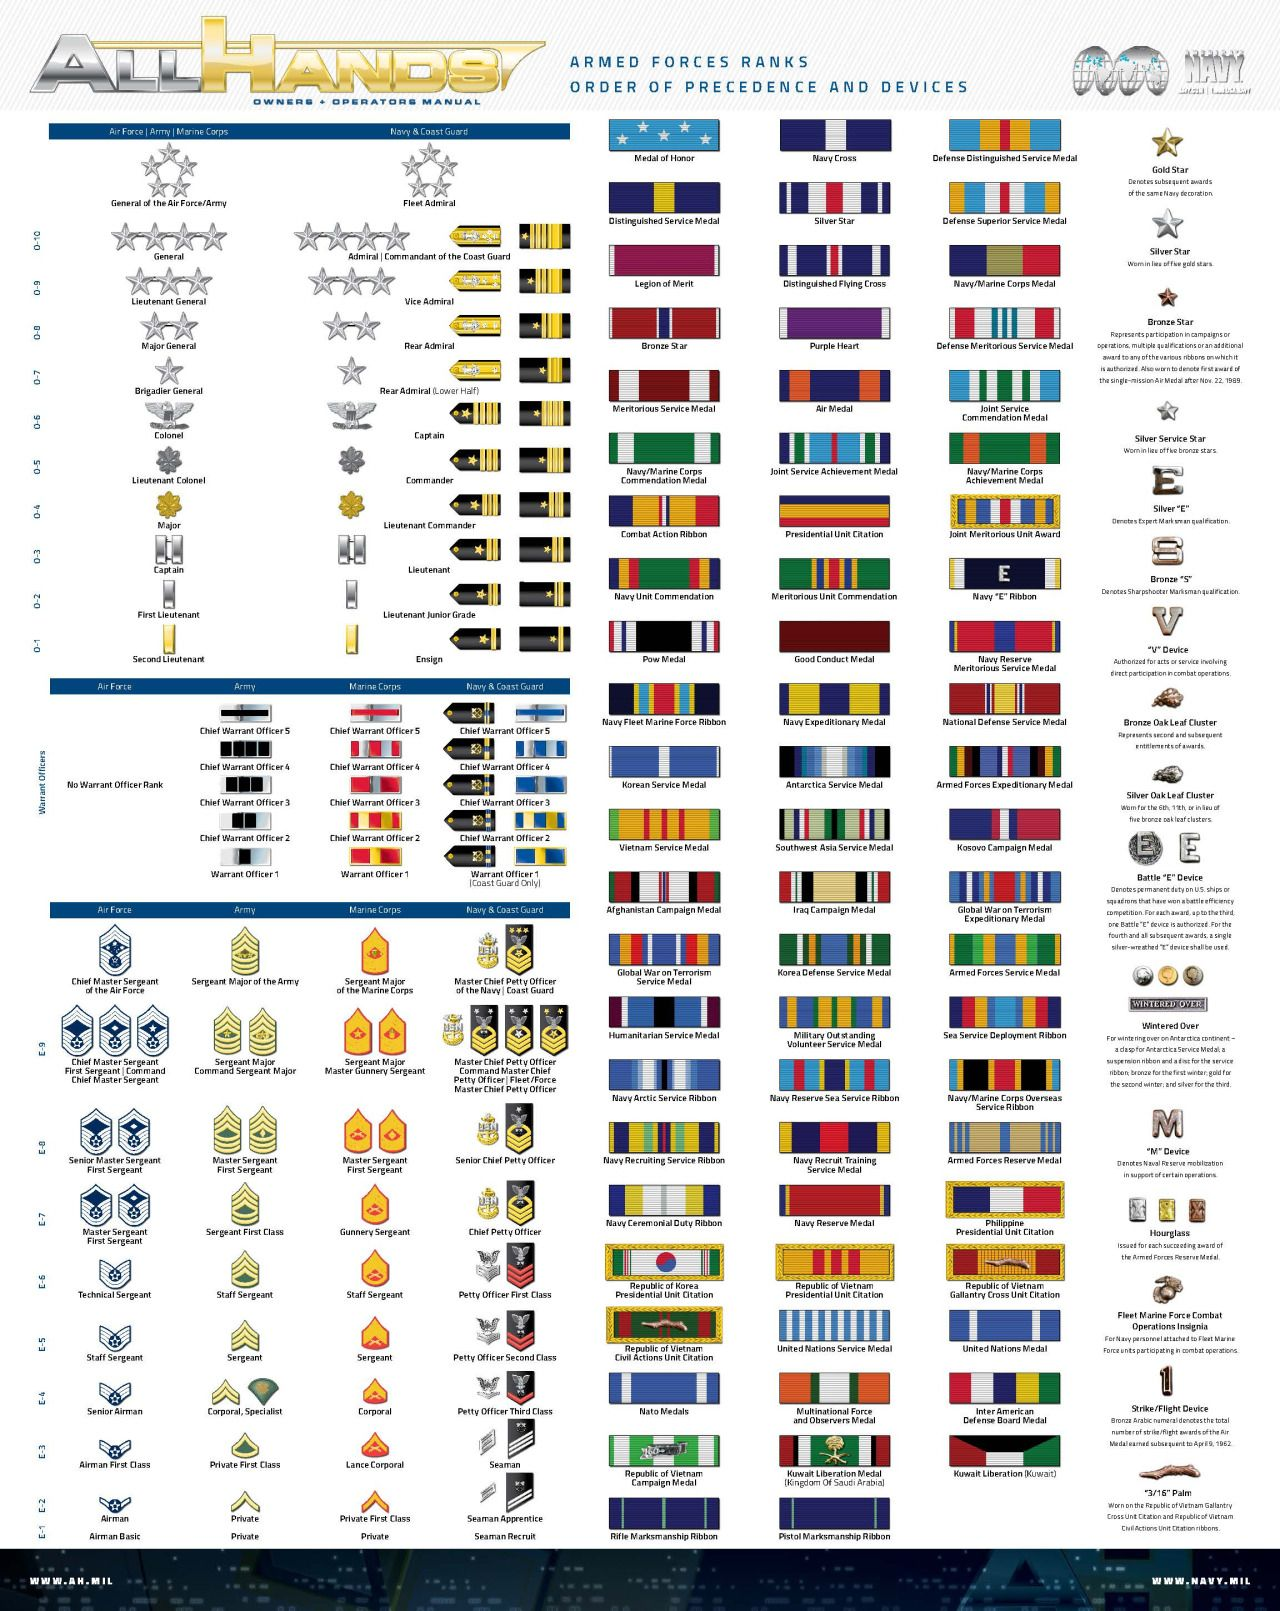 Do You Know All Your Navy Ranks And Ribbons What About Insignia Devices Whether You Need To Learn Before Boot Camp W Navy Ranks Military Ranks Navy Insignia